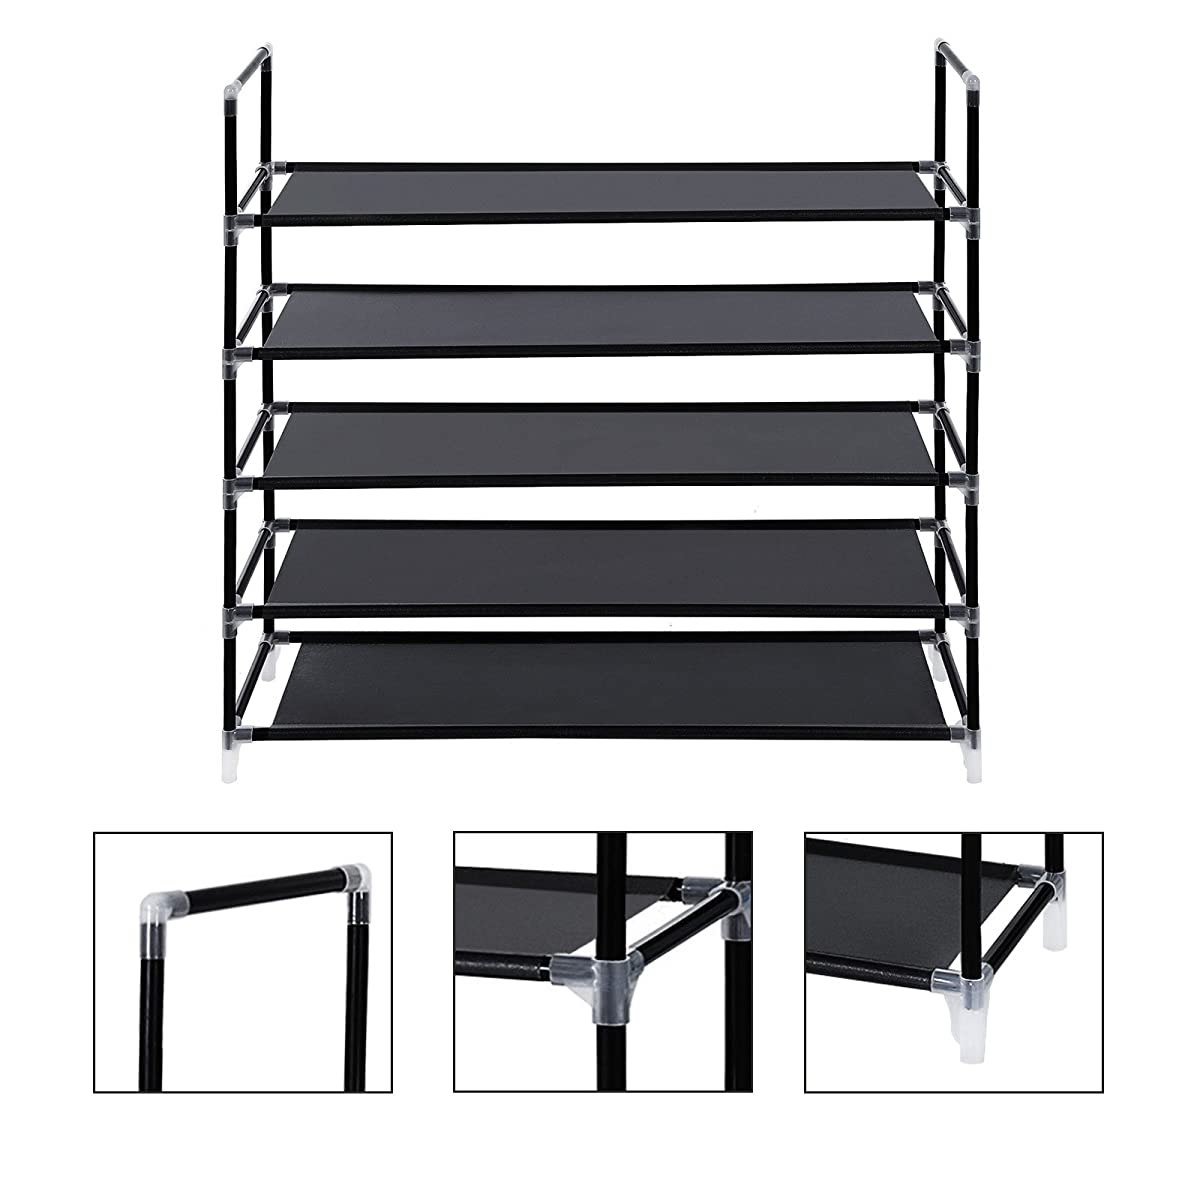 "SONGMICS 5 Tiers Shoe Rack Space Saving Shoe Tower Cabinet Storage Organizer Black 39""L Holds 20-25 Pair of Shoes ULSH55H"